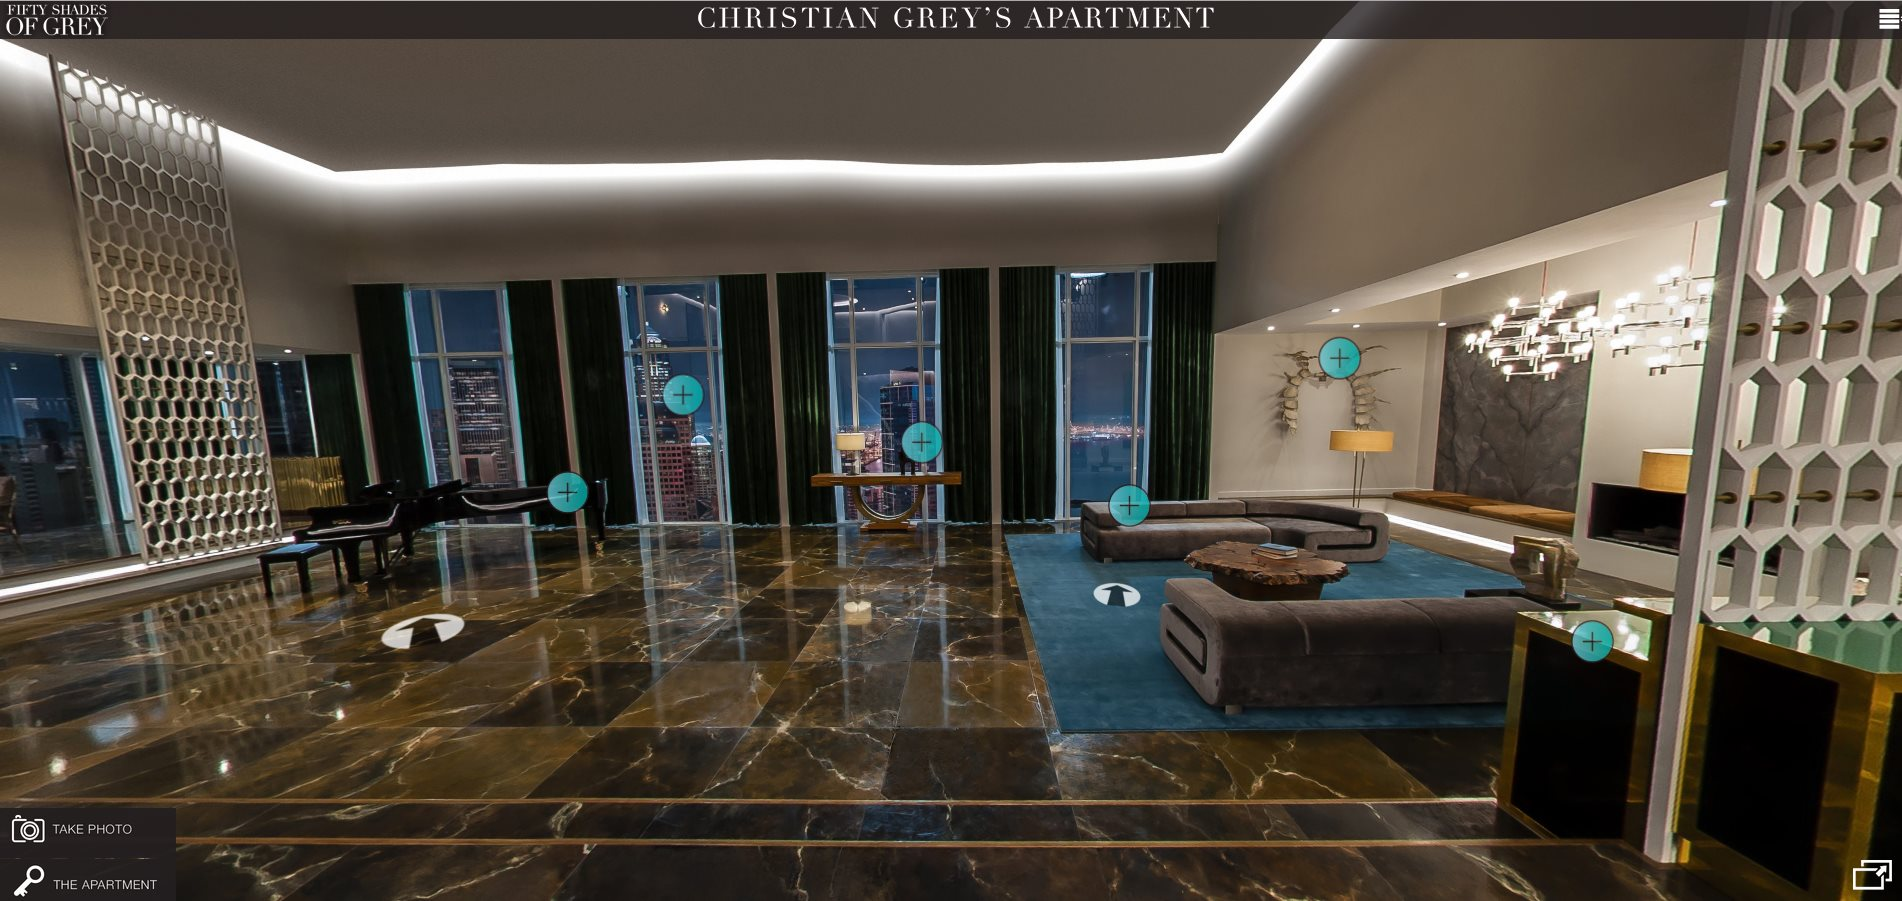 Fifty Shades Of Grey Eine Tour Durch Christians Apartment